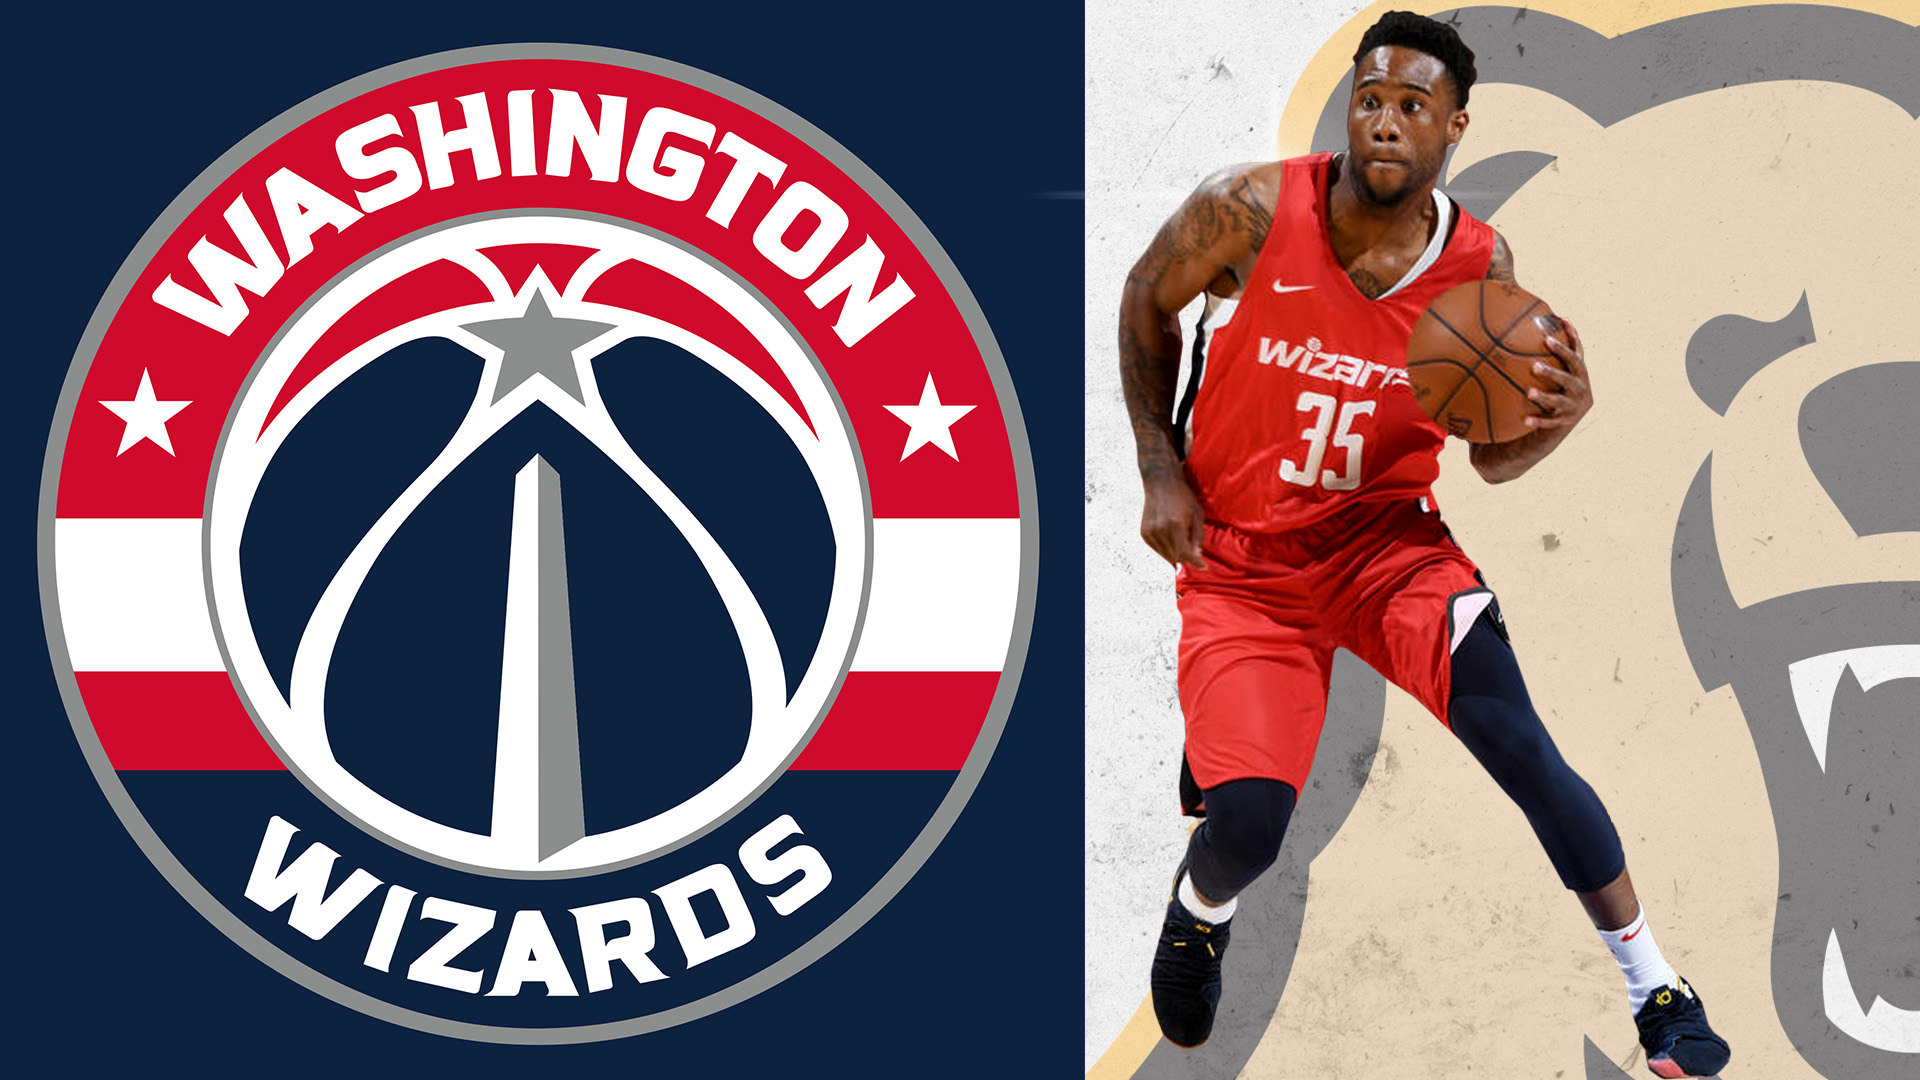 04b784f0263f Tiwian Kendley Signs Camp Deal with Washington Wizards - Morgan ...